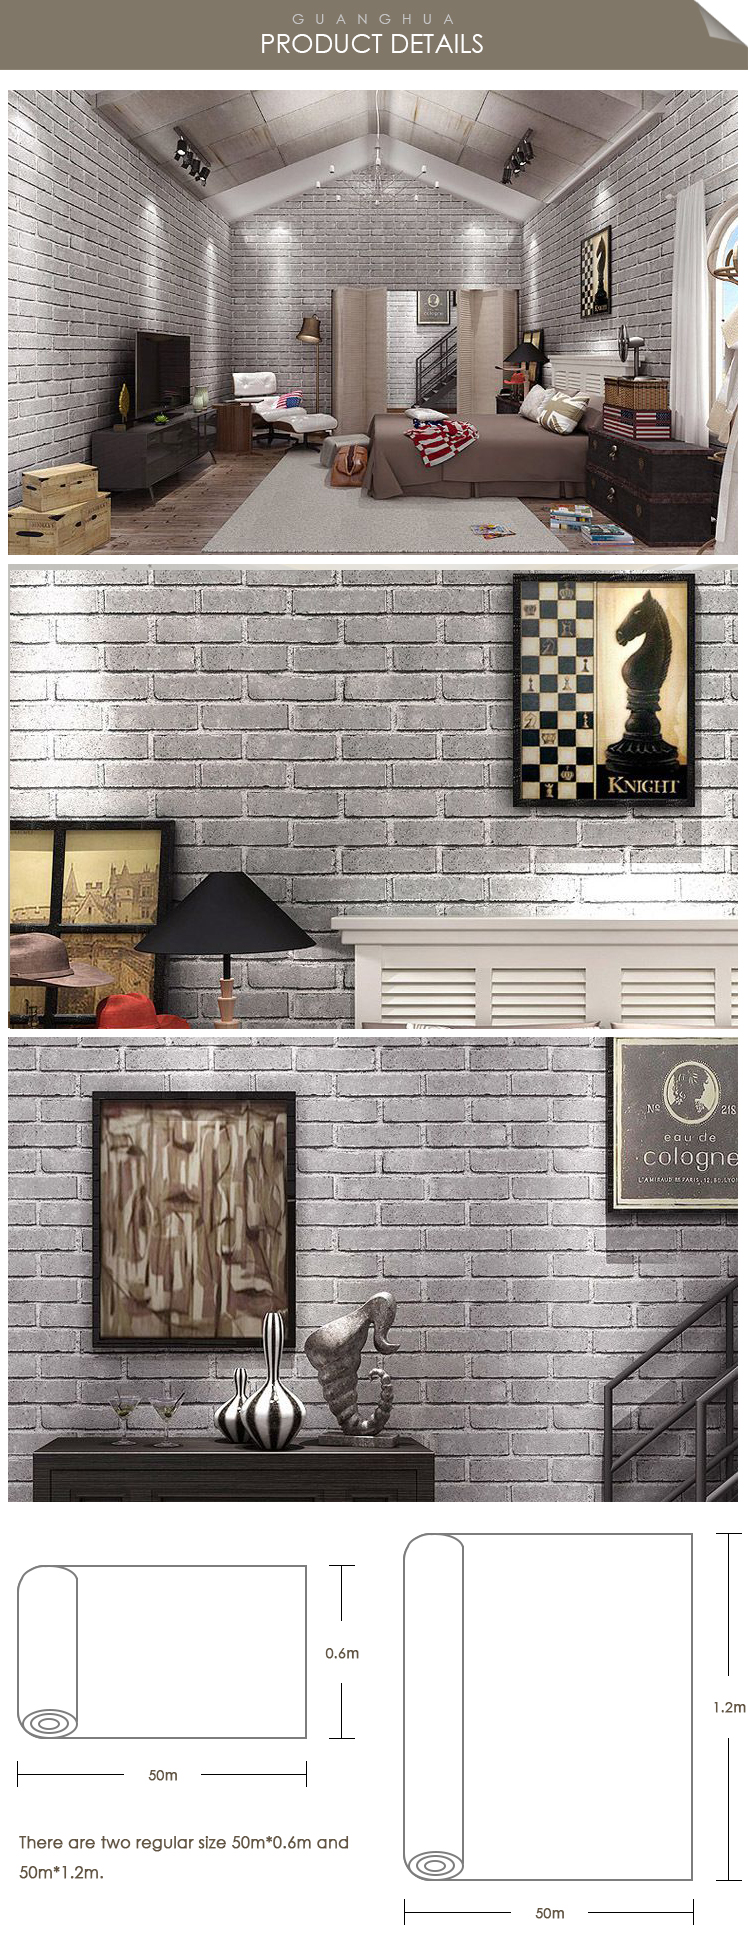 Good Quality Mould-Proof Self-adhesive Durable 3D Wallpaper PVC